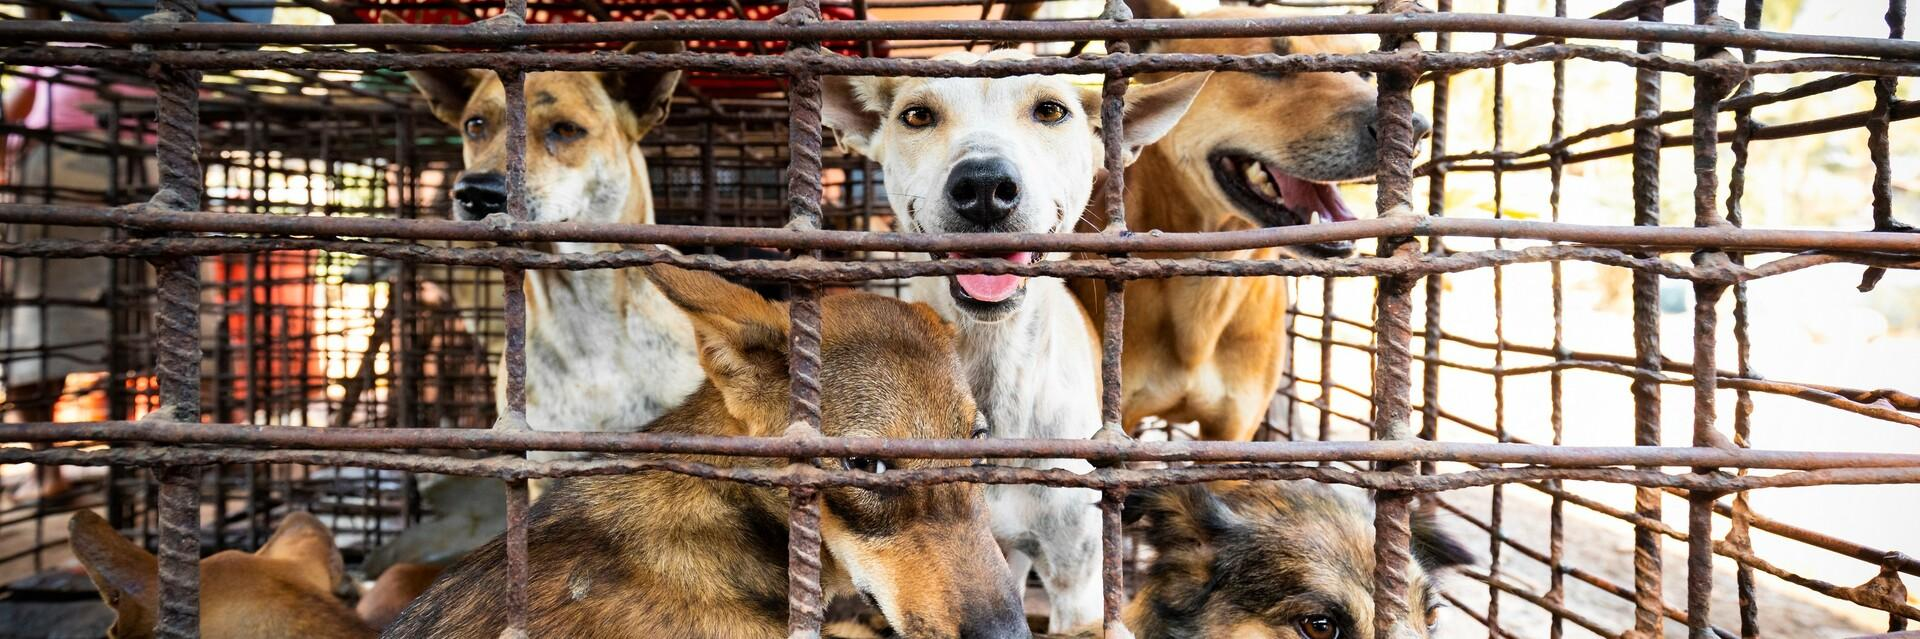 Dogs in a slaughterhouse in Cambodia